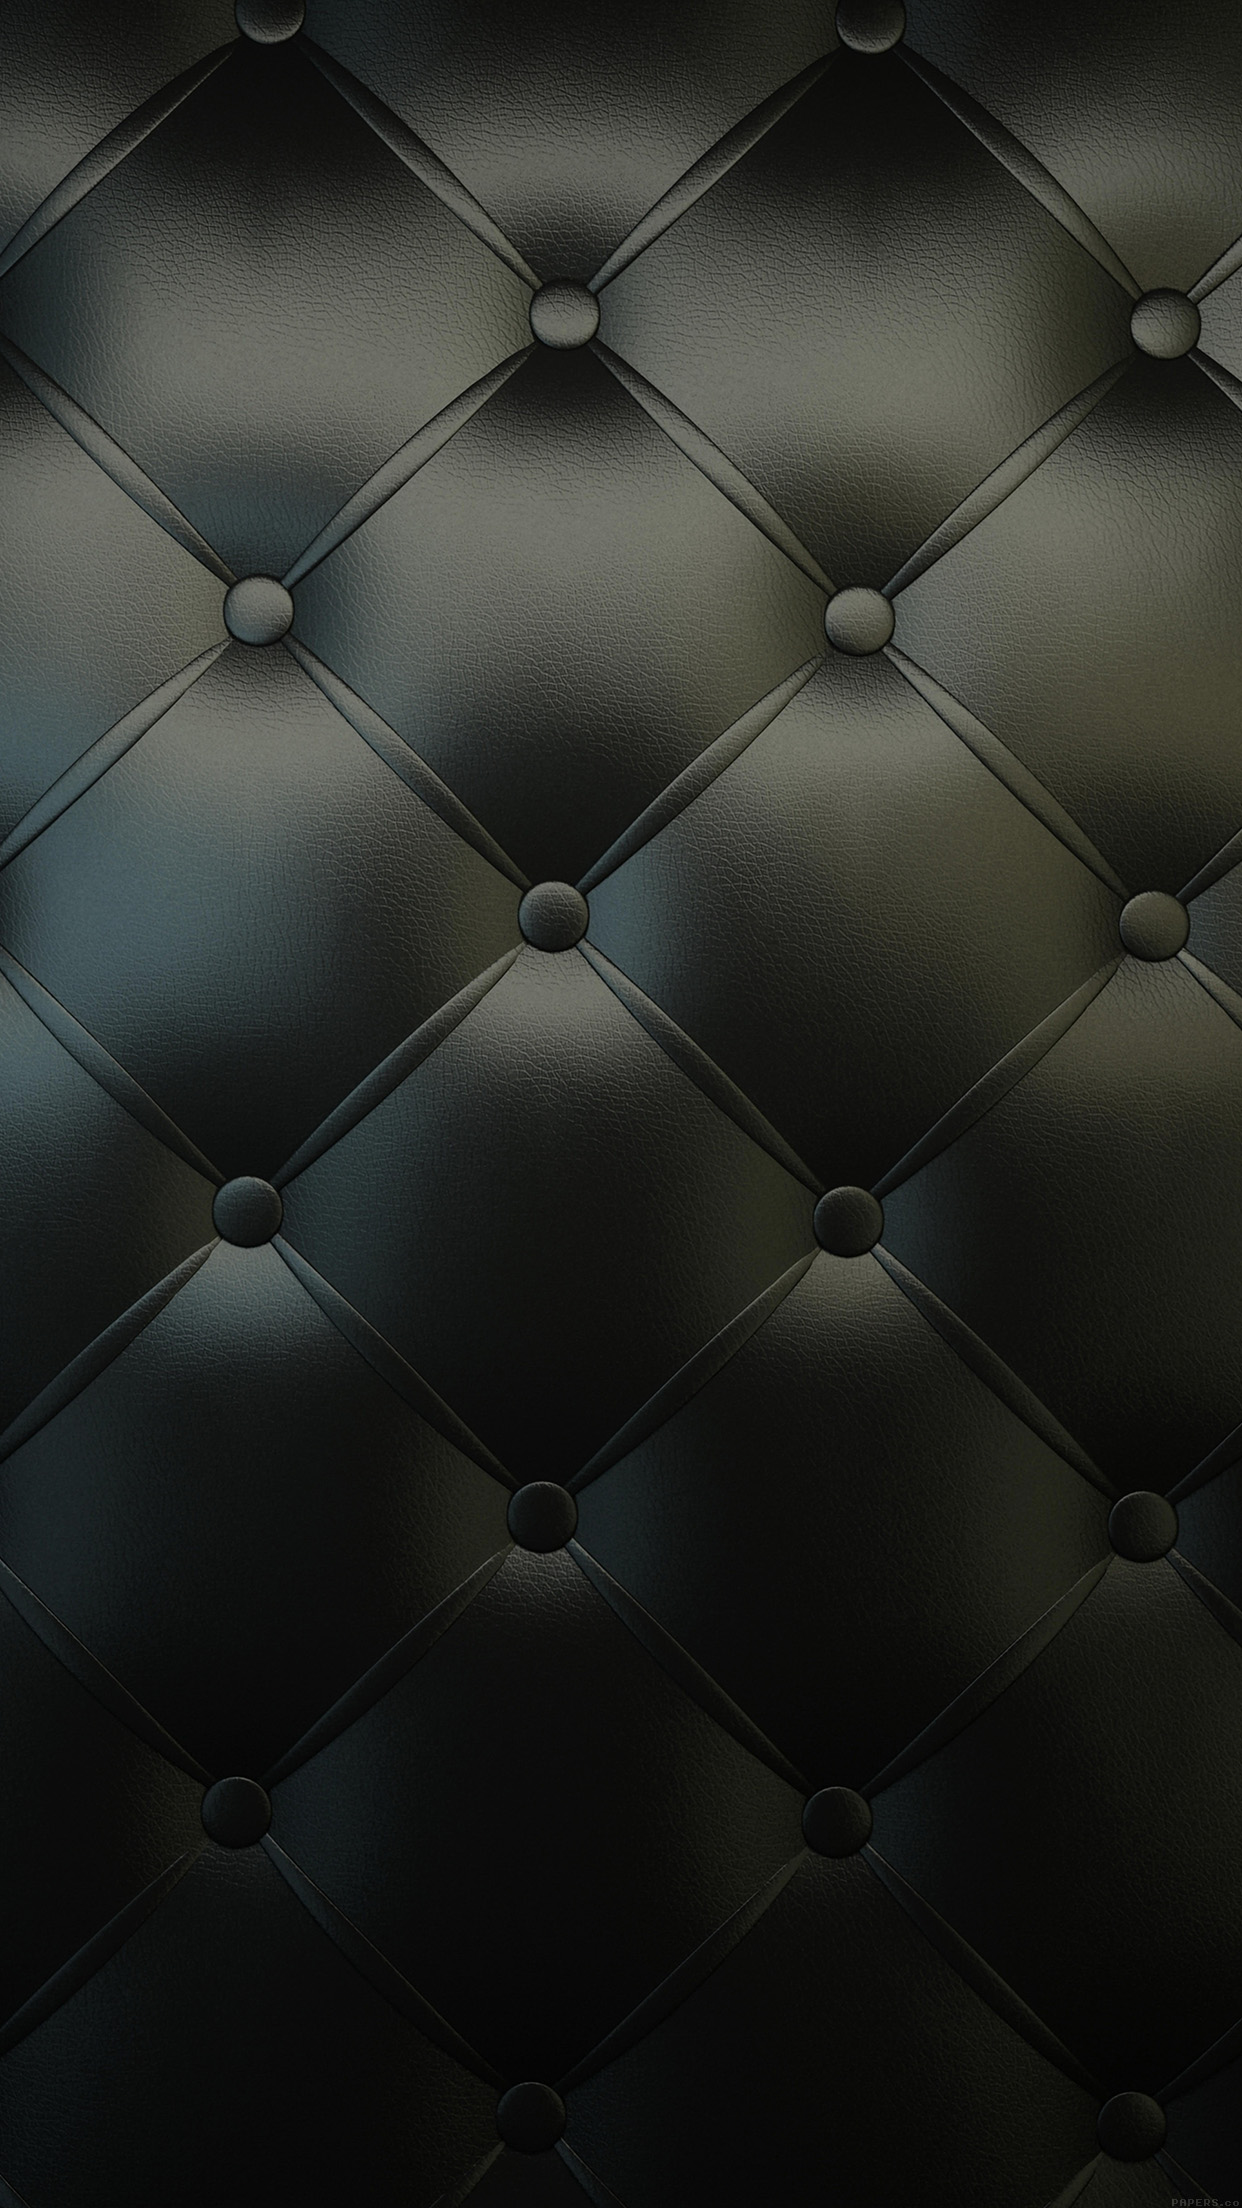 Dark-Chesterfield-Sofa-Pattern-iPhone-Plus-HD-wallpaper-wp3004838